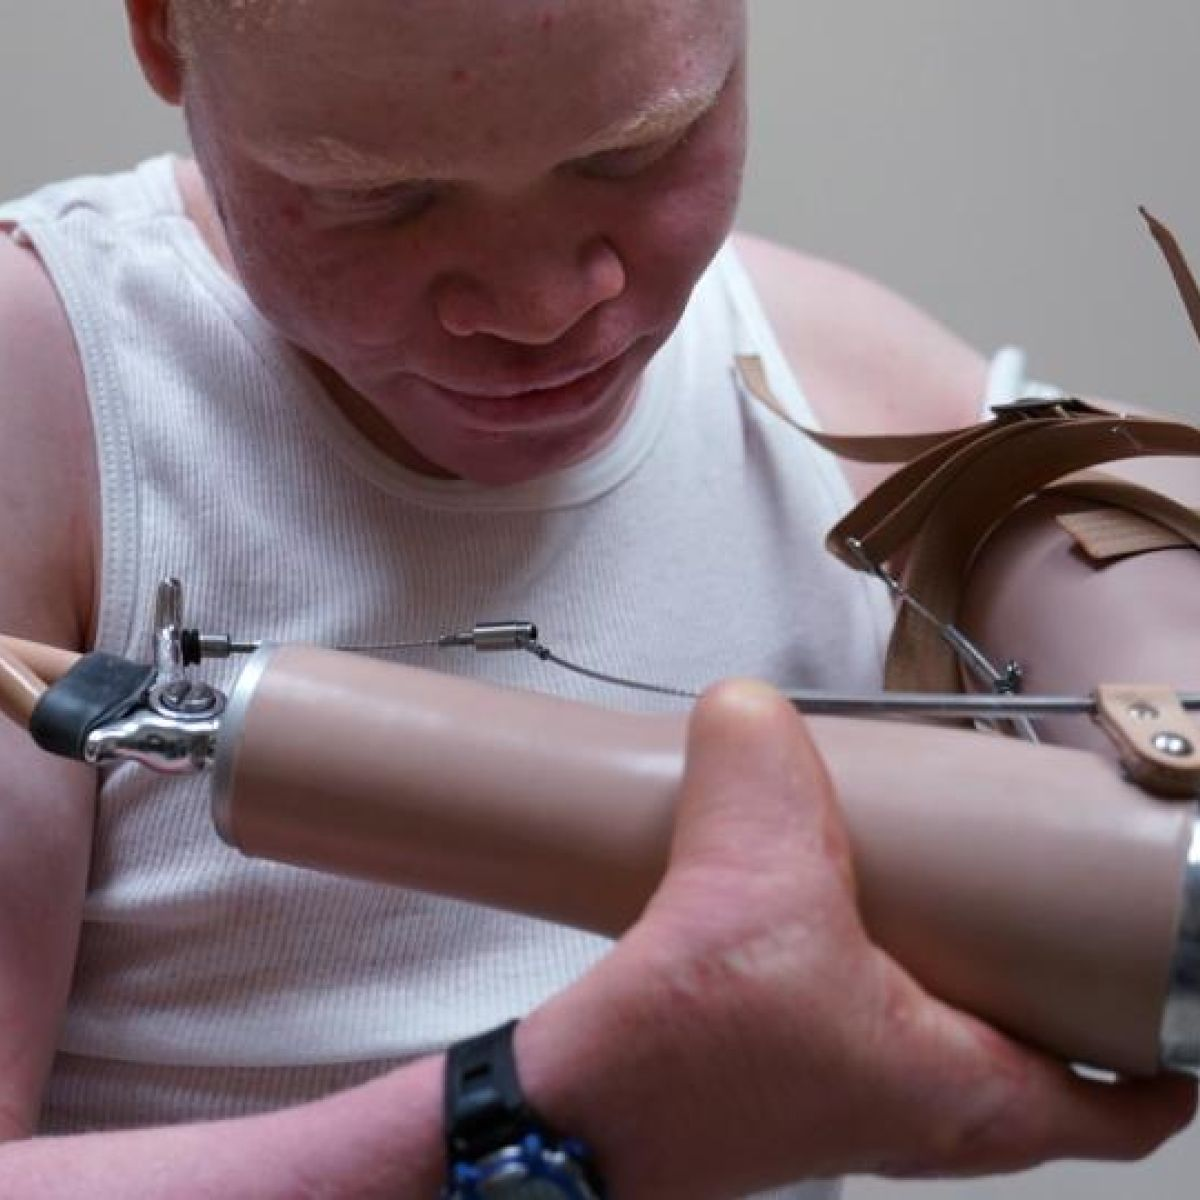 Albino children attacked for body parts get new limbs in America